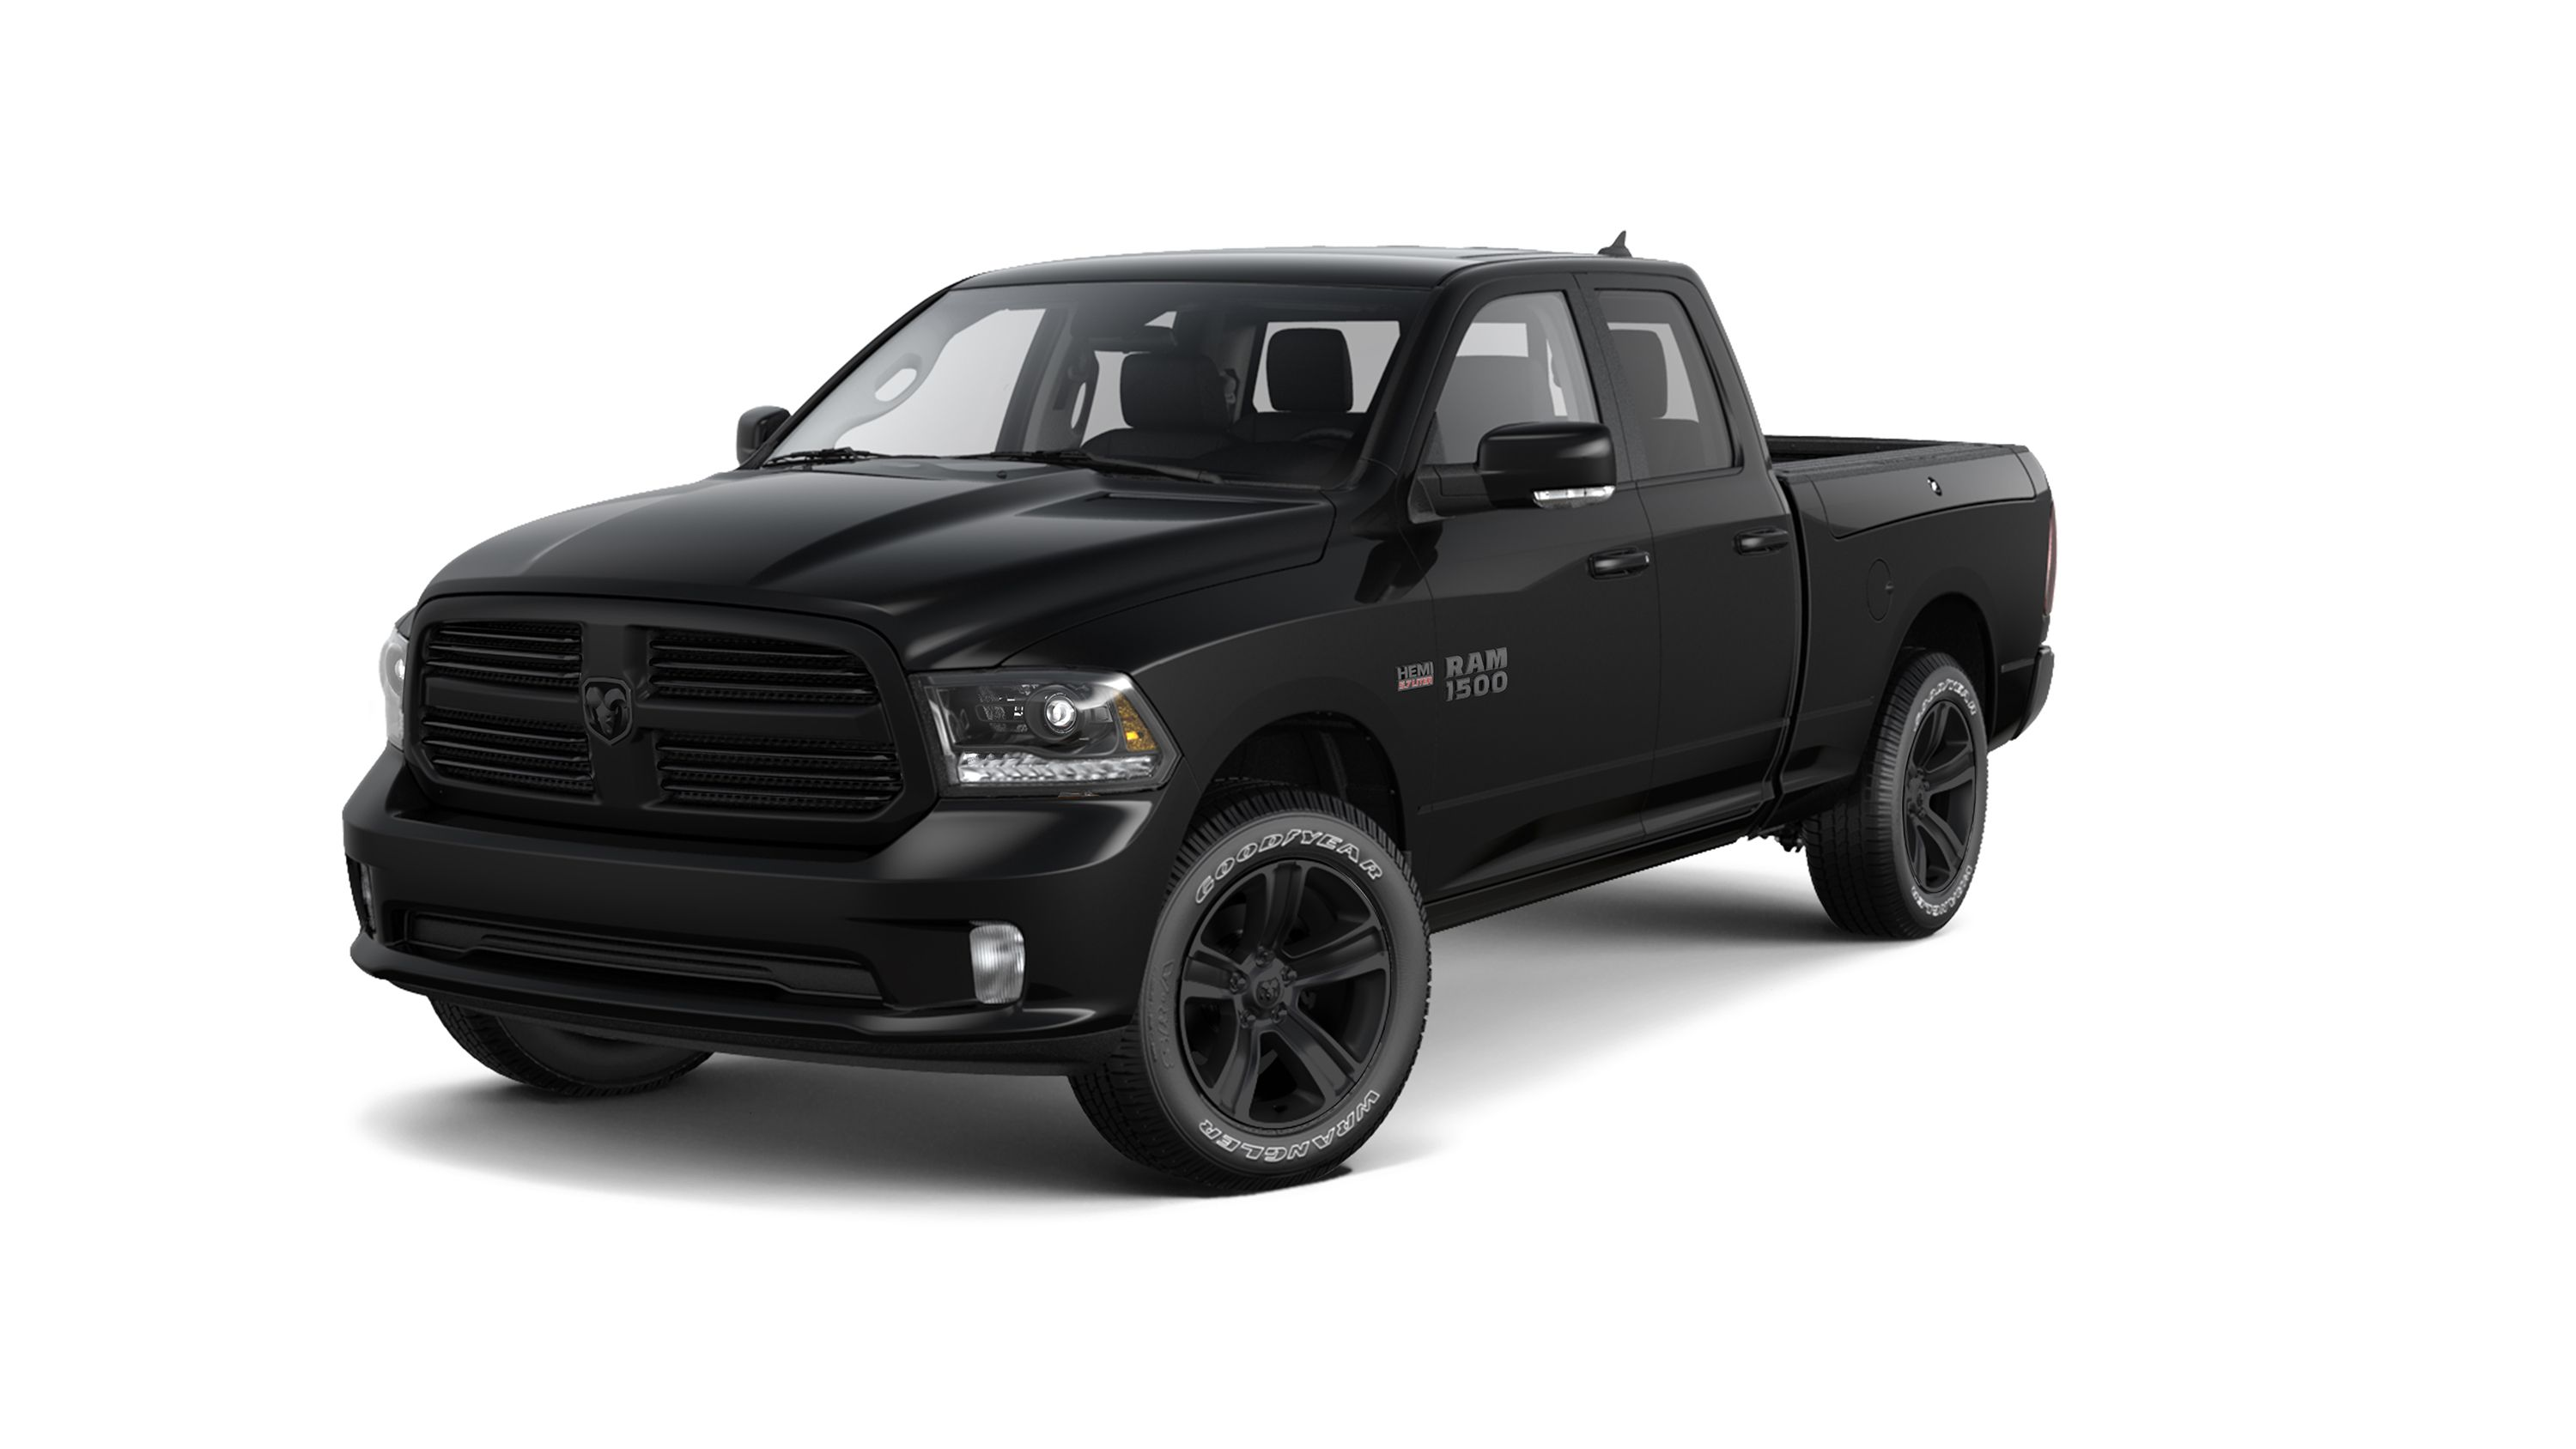 2018 dodge extended cab. interesting cab jeeps for 2018 dodge extended cab